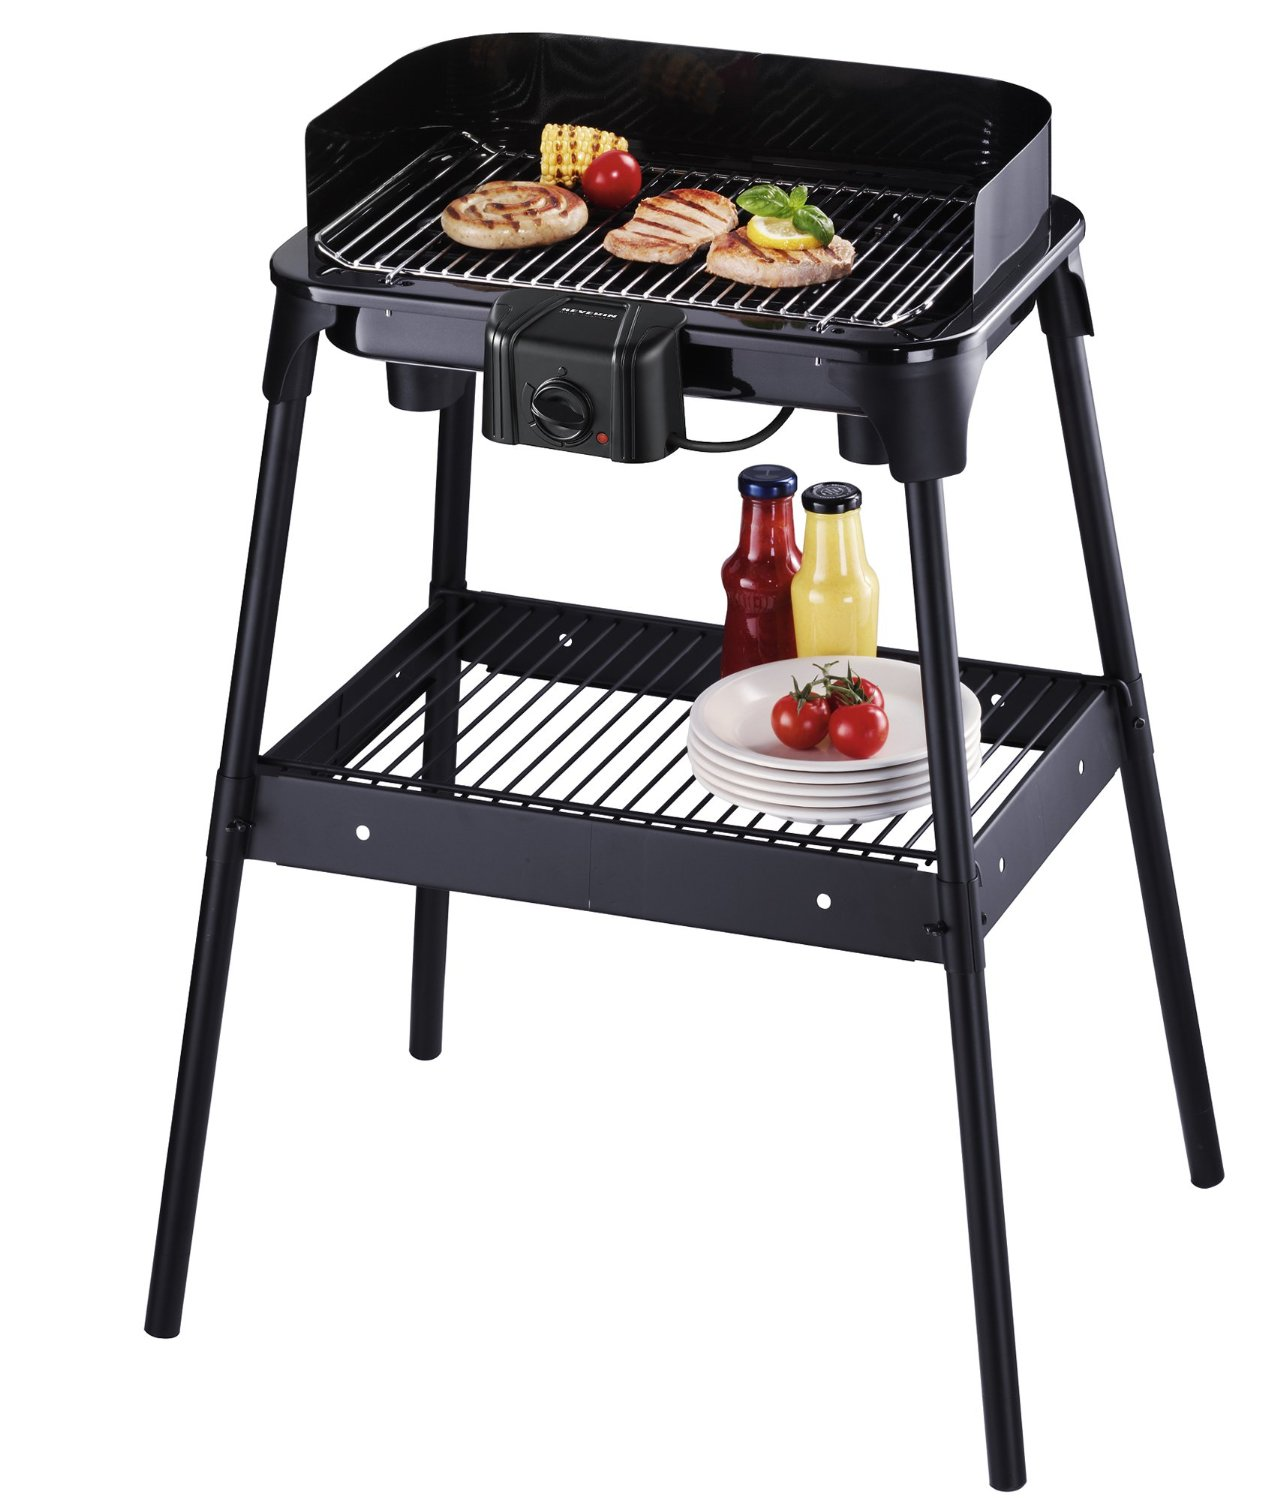 Severin 2500 W Electric Stand Barbecue - Black